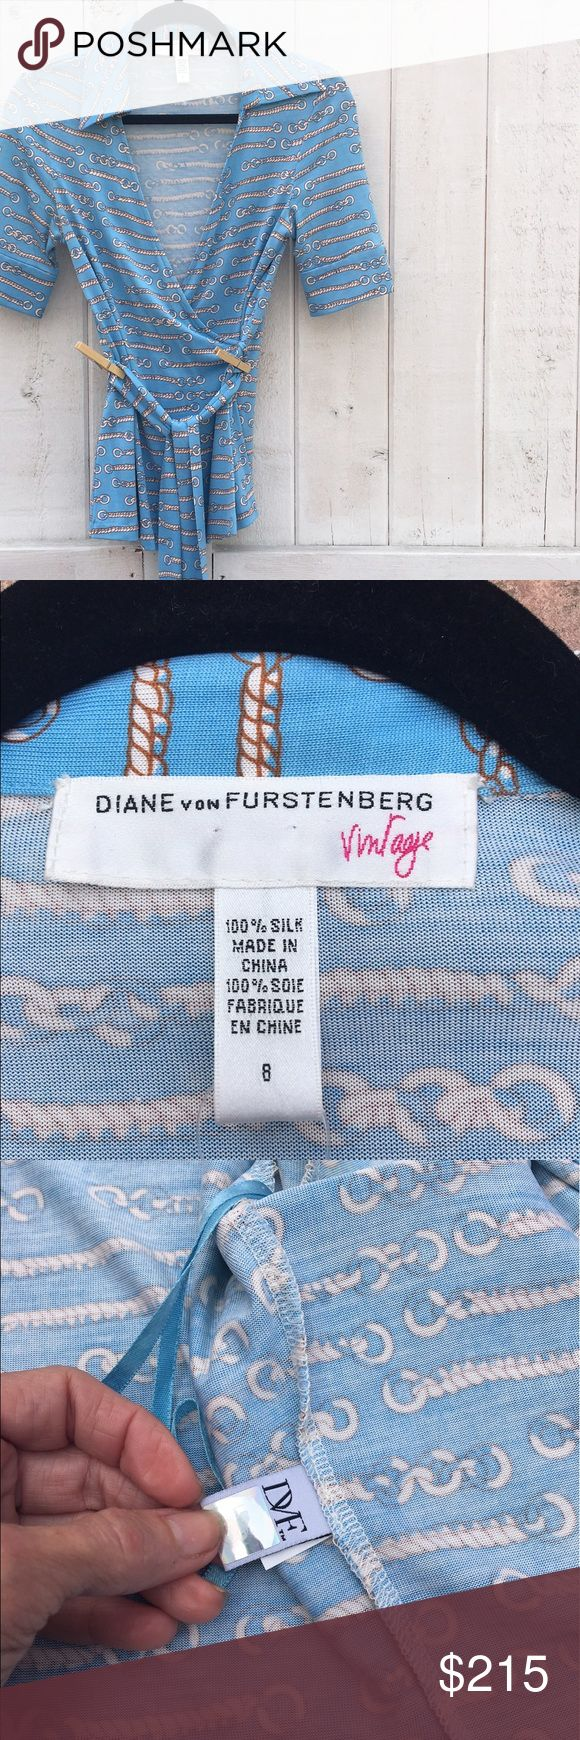 Diane Von Furstenberg Vintage Wrap Blouse  NWOT Classic. Timeless. And hella cool looking, this piece by DVF is the ultimate polo match meets drinks on the yacht meets ain't life grand?! top. In perfect condition (see tags) this iconic top in an iconic print from the iconic woman Barry Diller calls baby, can be yours! Diane Von Furstenberg Tops